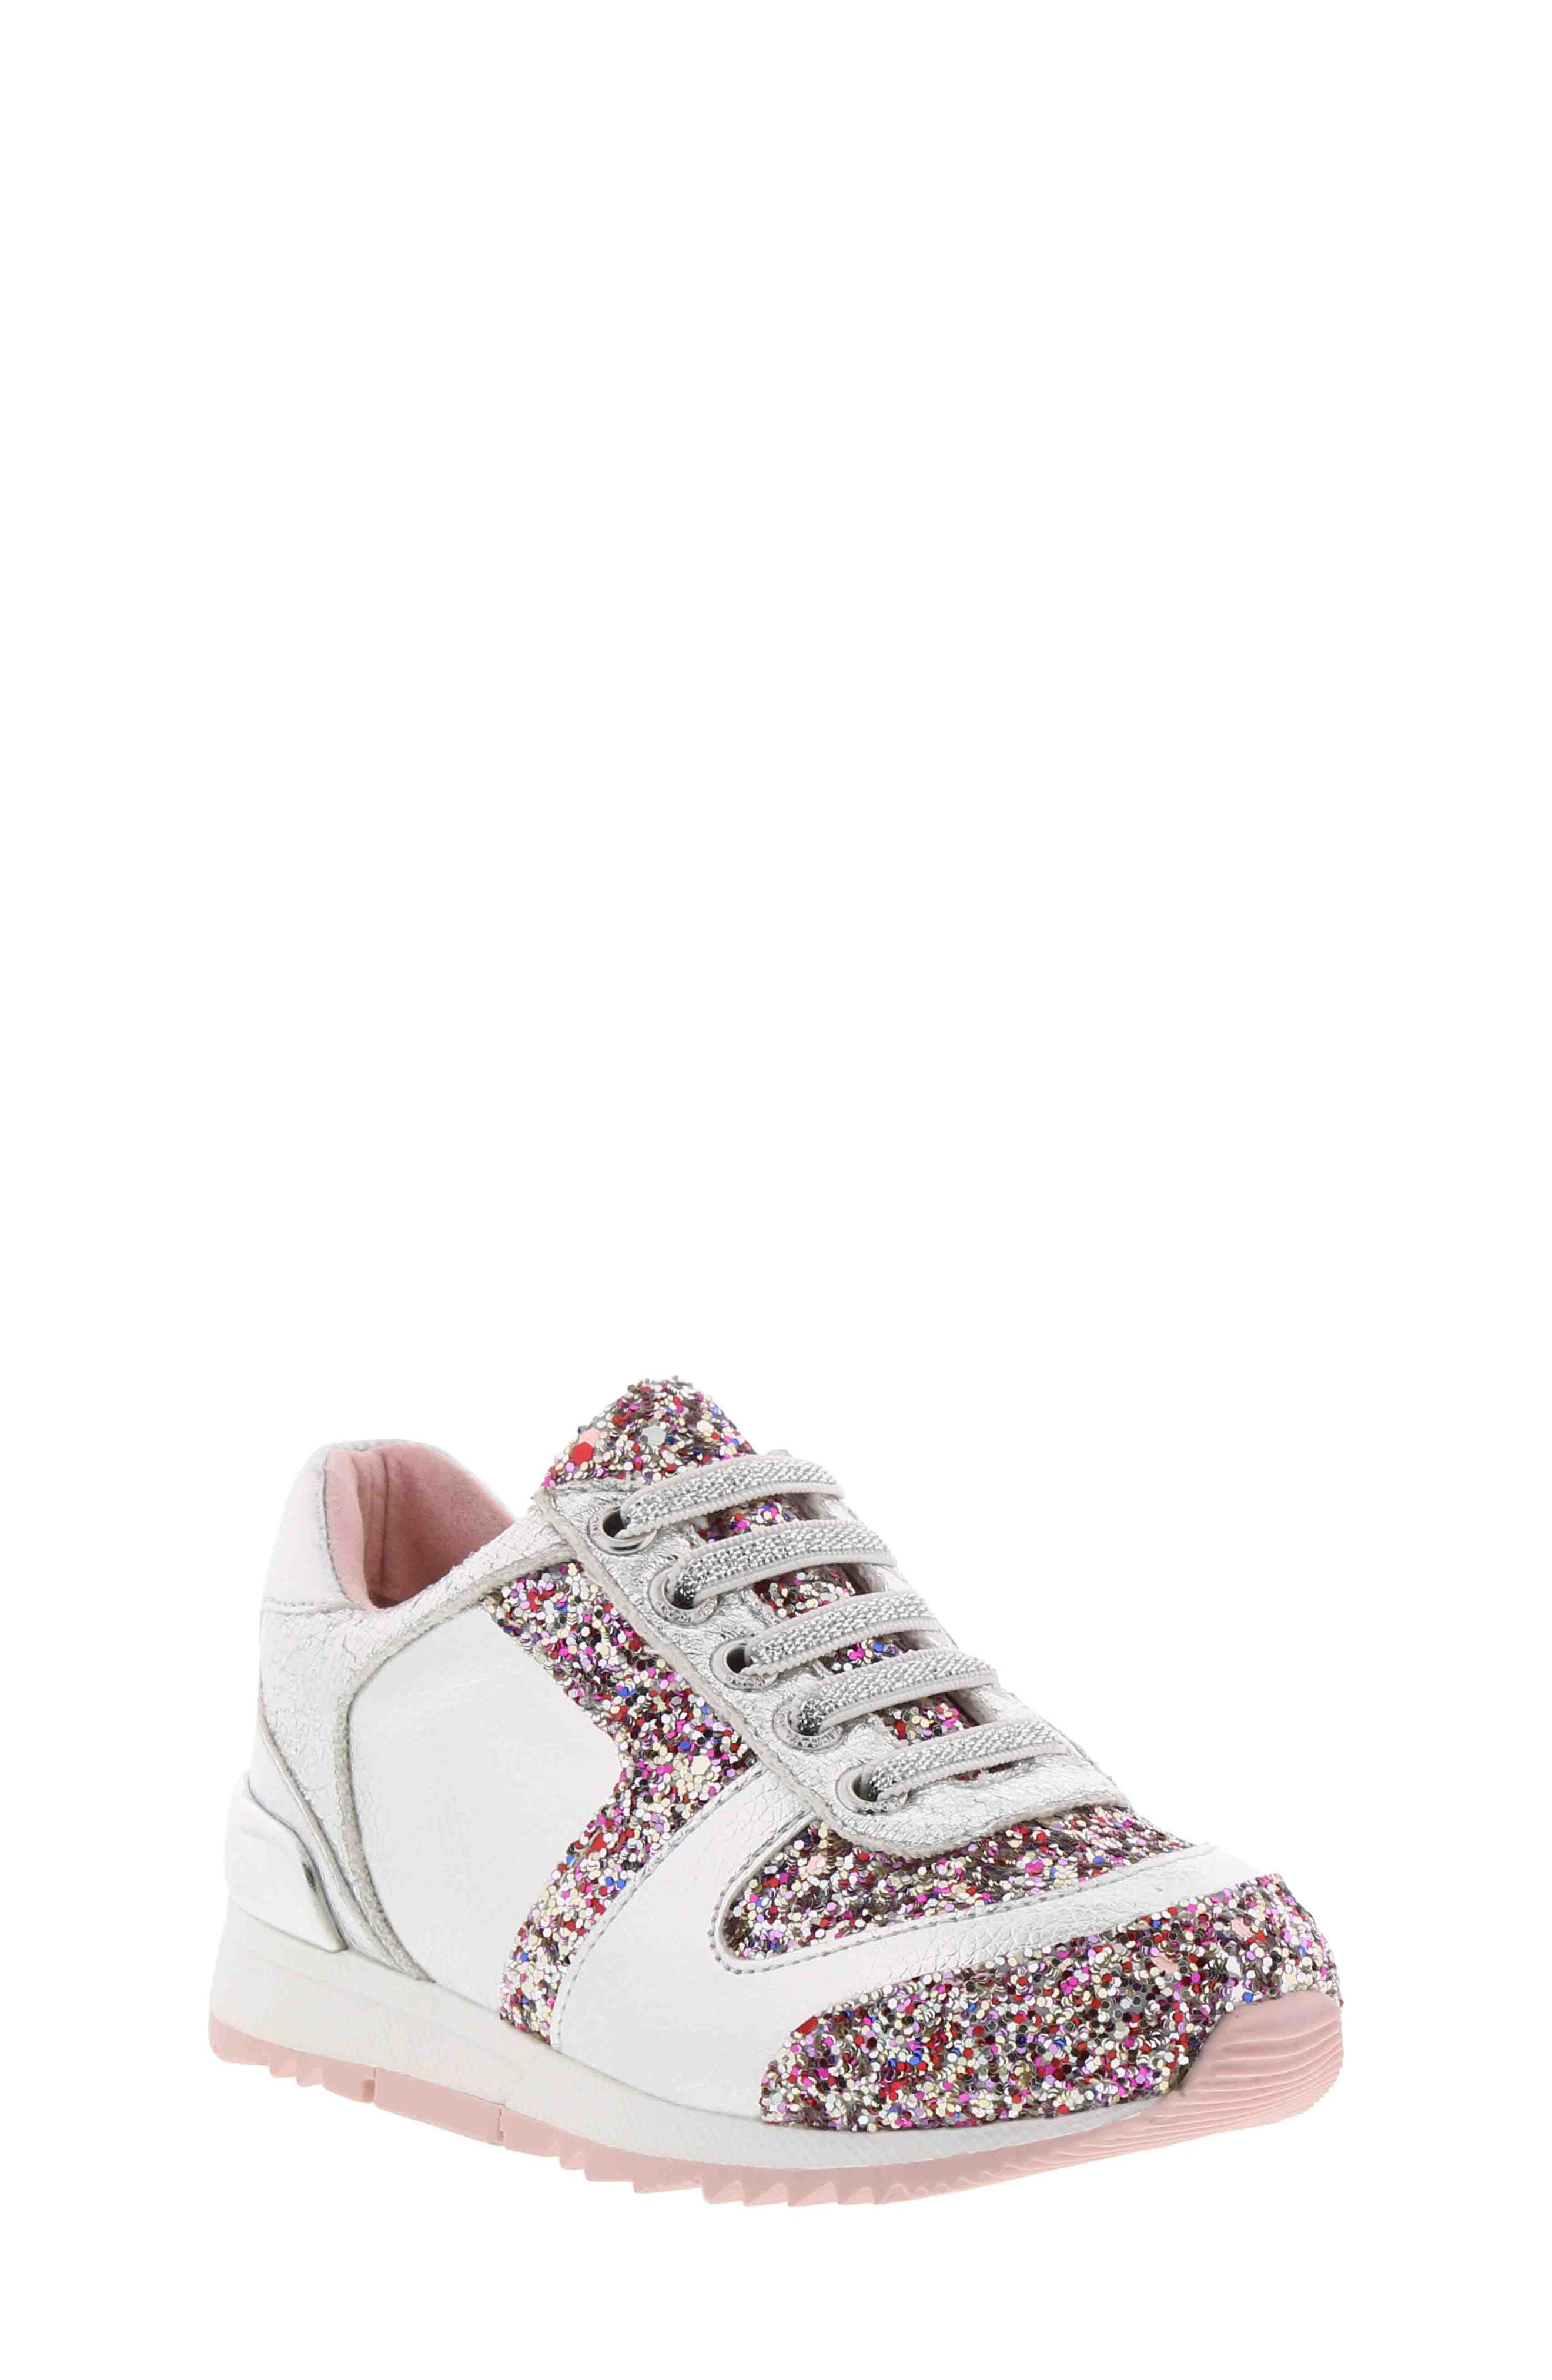 Allie Beatz Glitter Sneaker,                         Main,                         color, SILVER MULTI